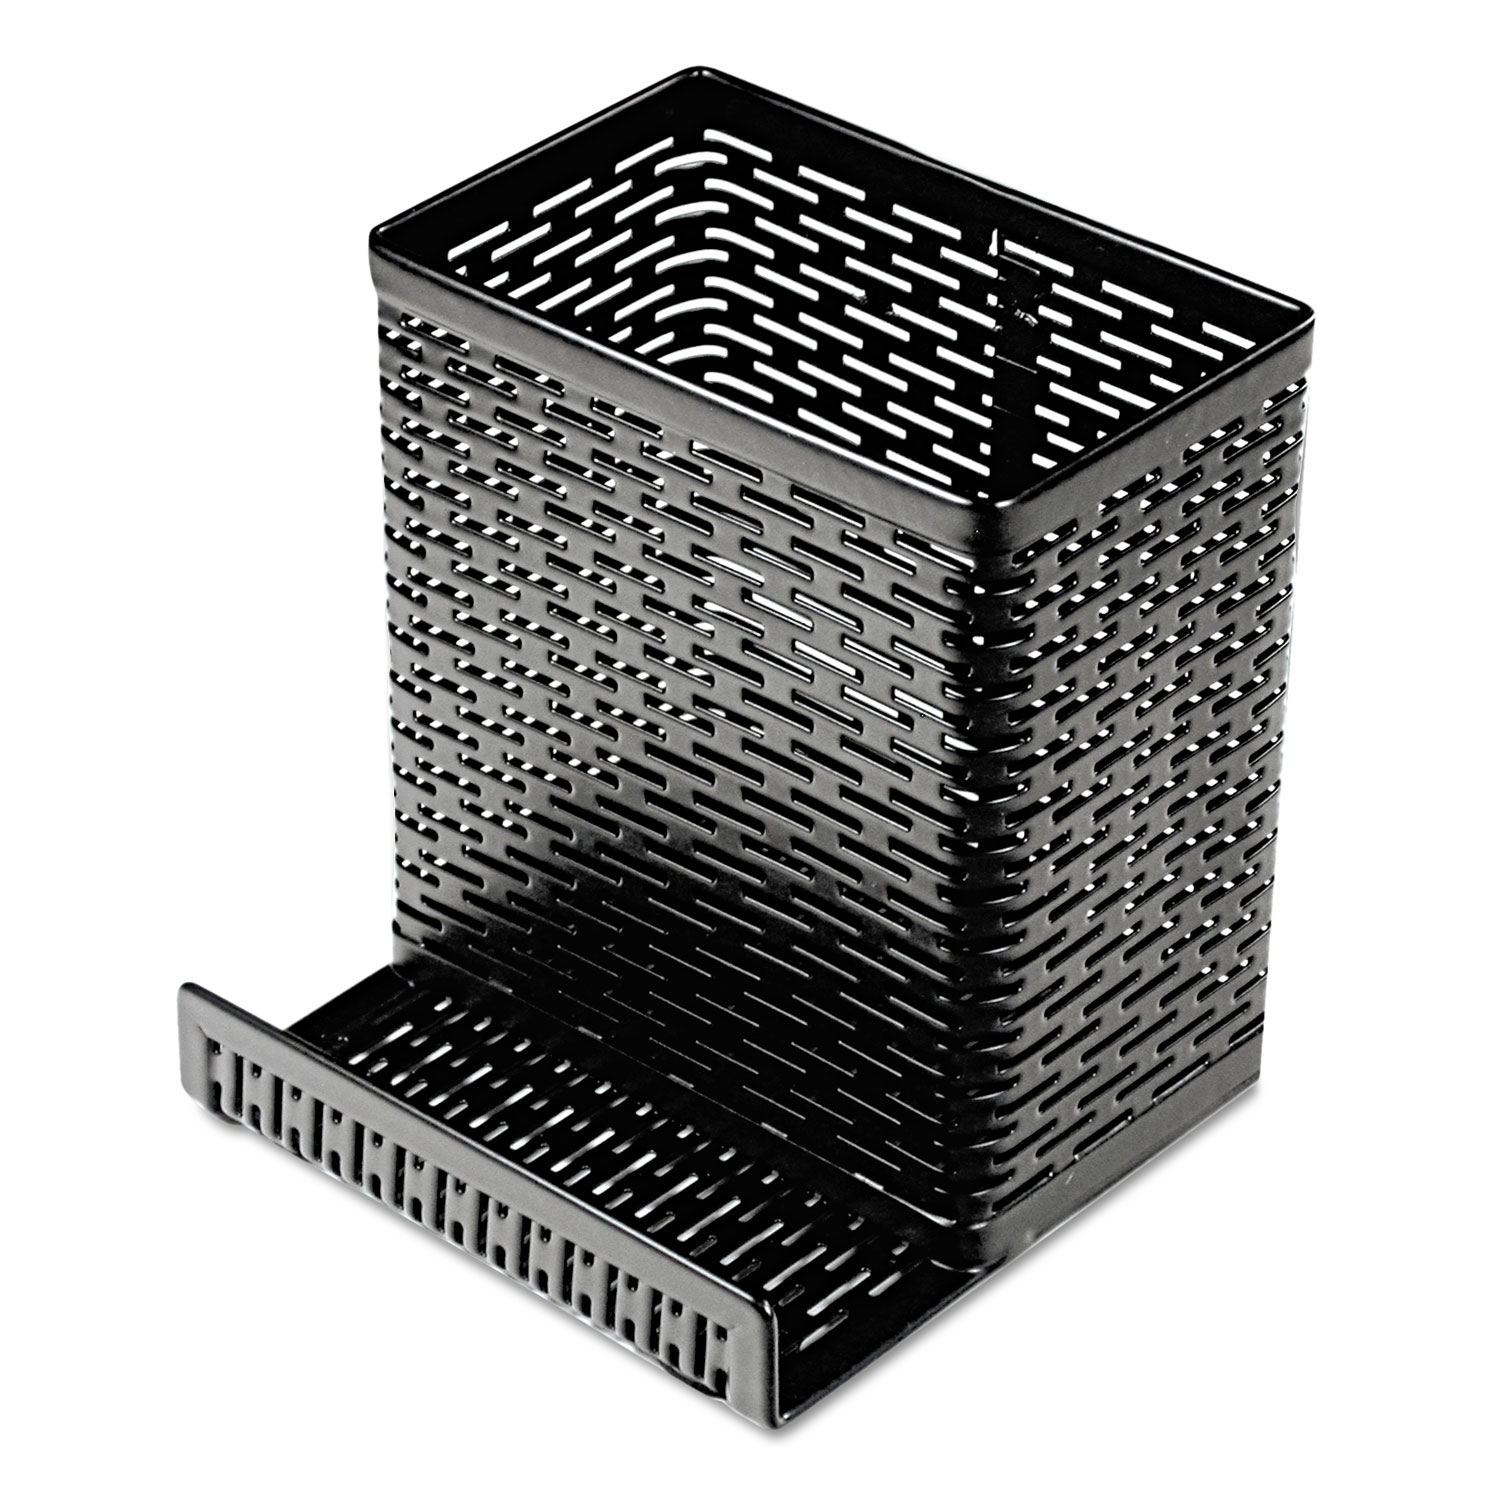 Urban Collection Punched Metal Pencil Cup/Cell Phone Stand, 3 1/2 x 3 1/2, Black